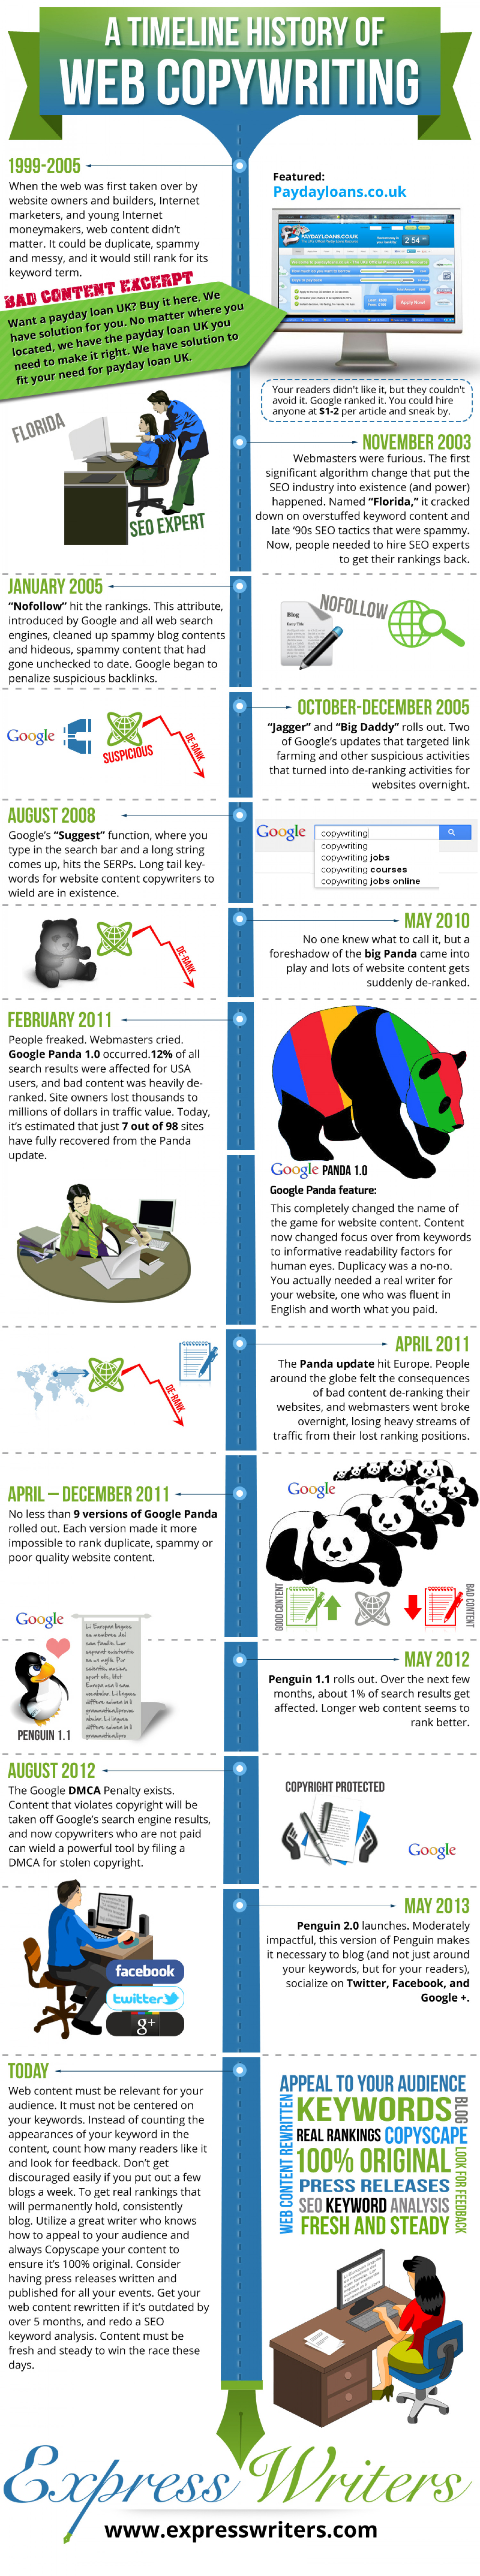 A Timeline History of SEO and Web Copywriting | Visual.ly